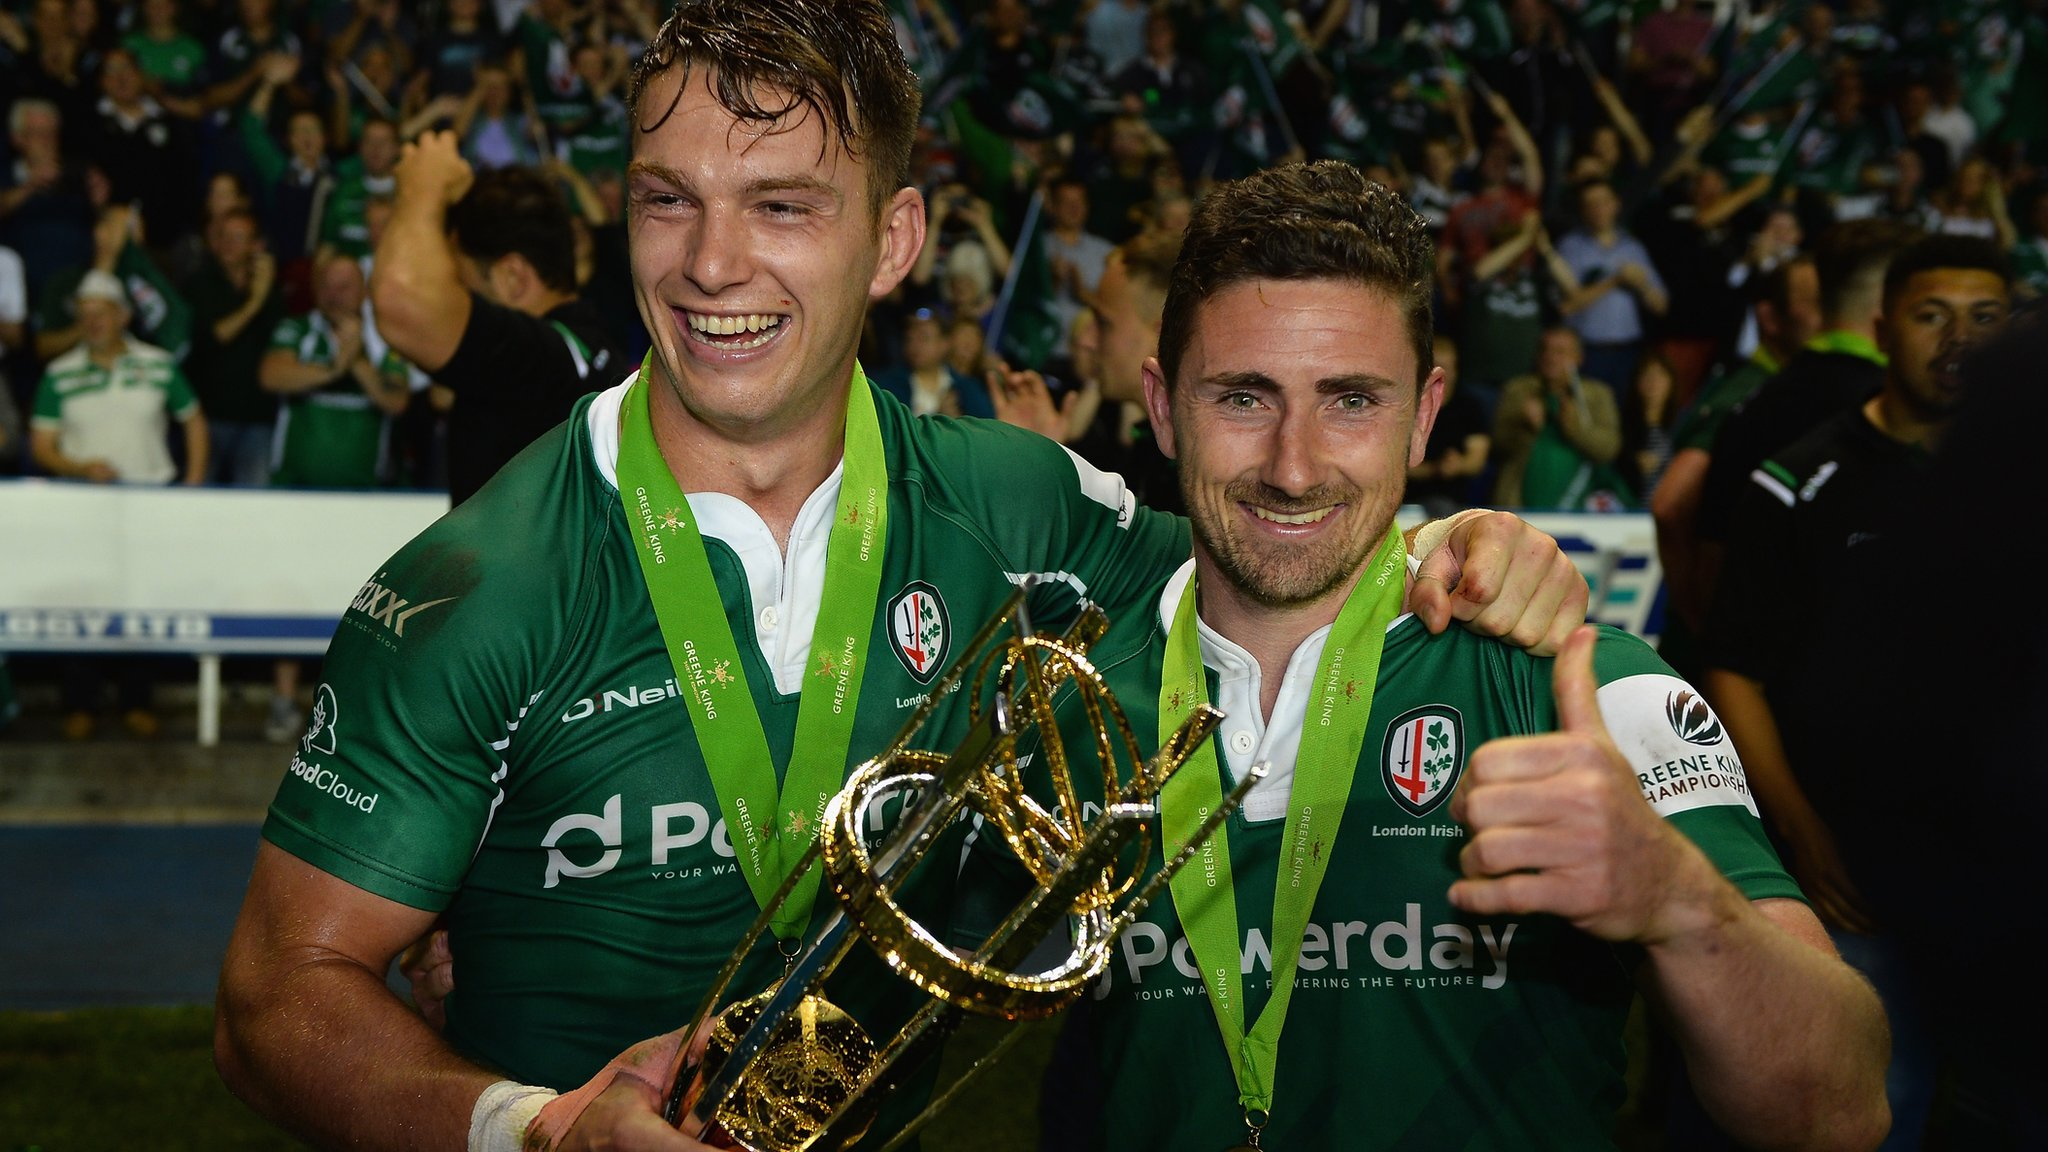 London Irish: Nick Kennedy pays tribute to squad effort in Championship promotion